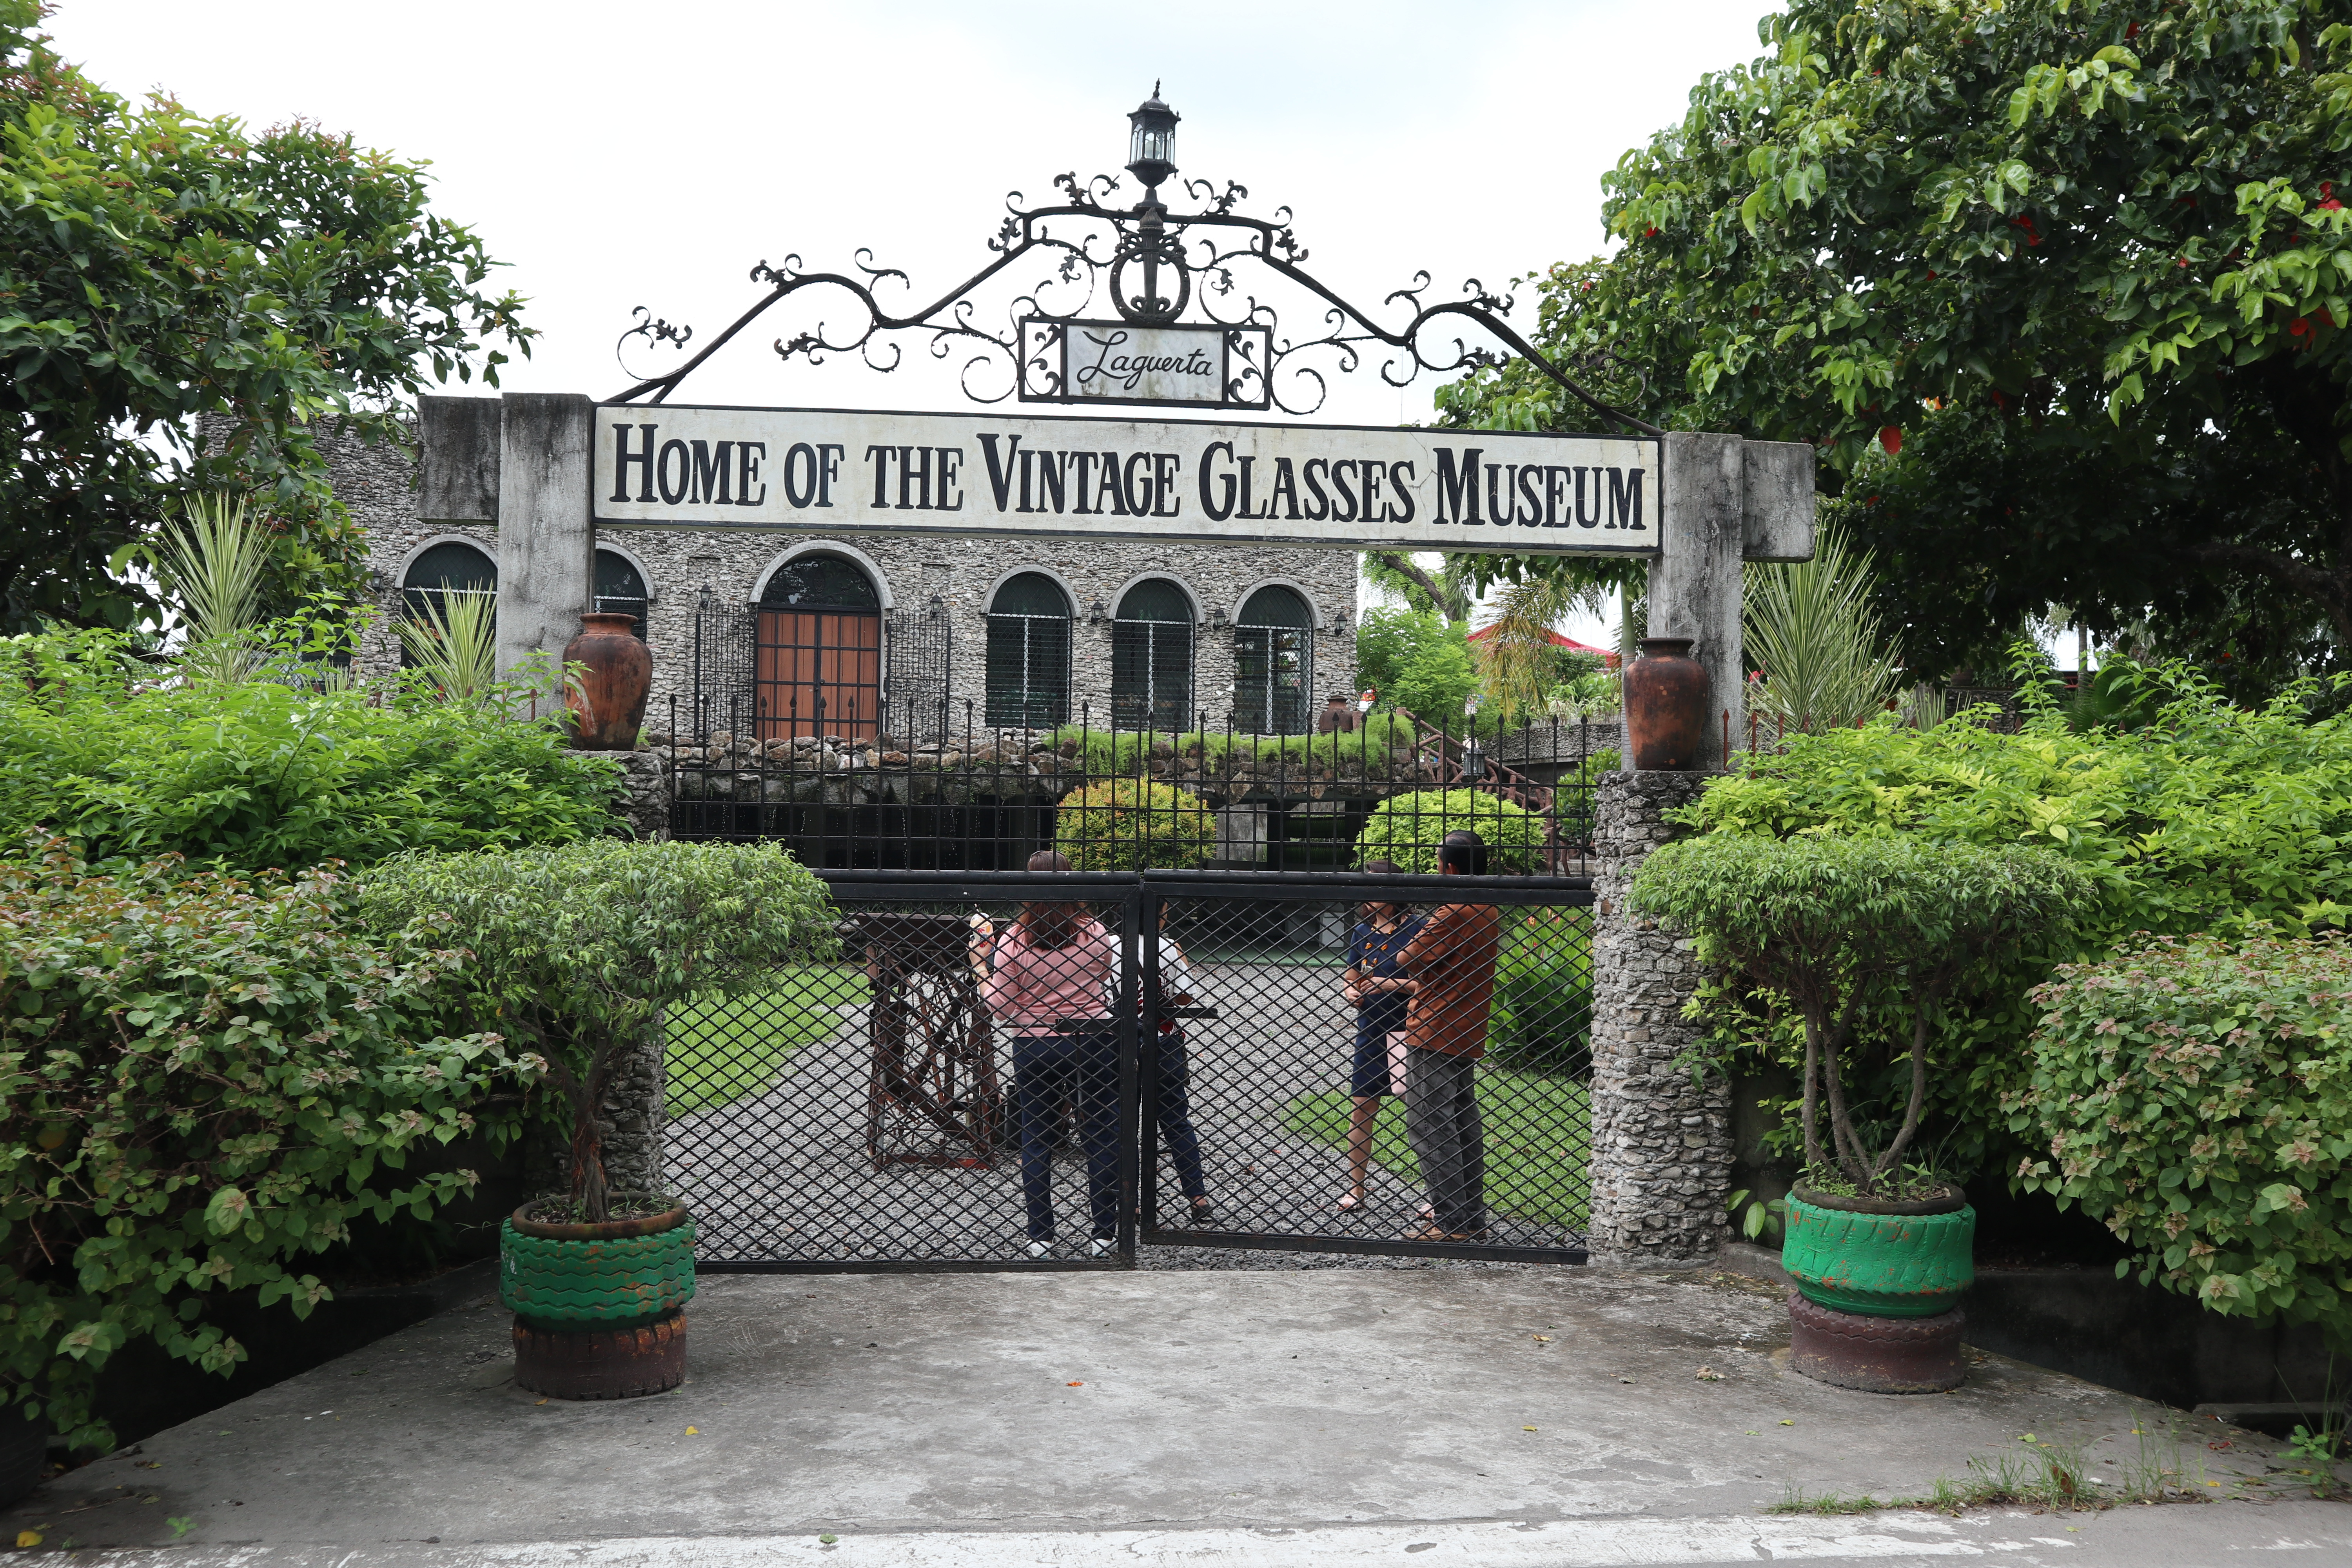 Laguerta: The Vintage Glasses Museum – The Bacolod Food Hunters